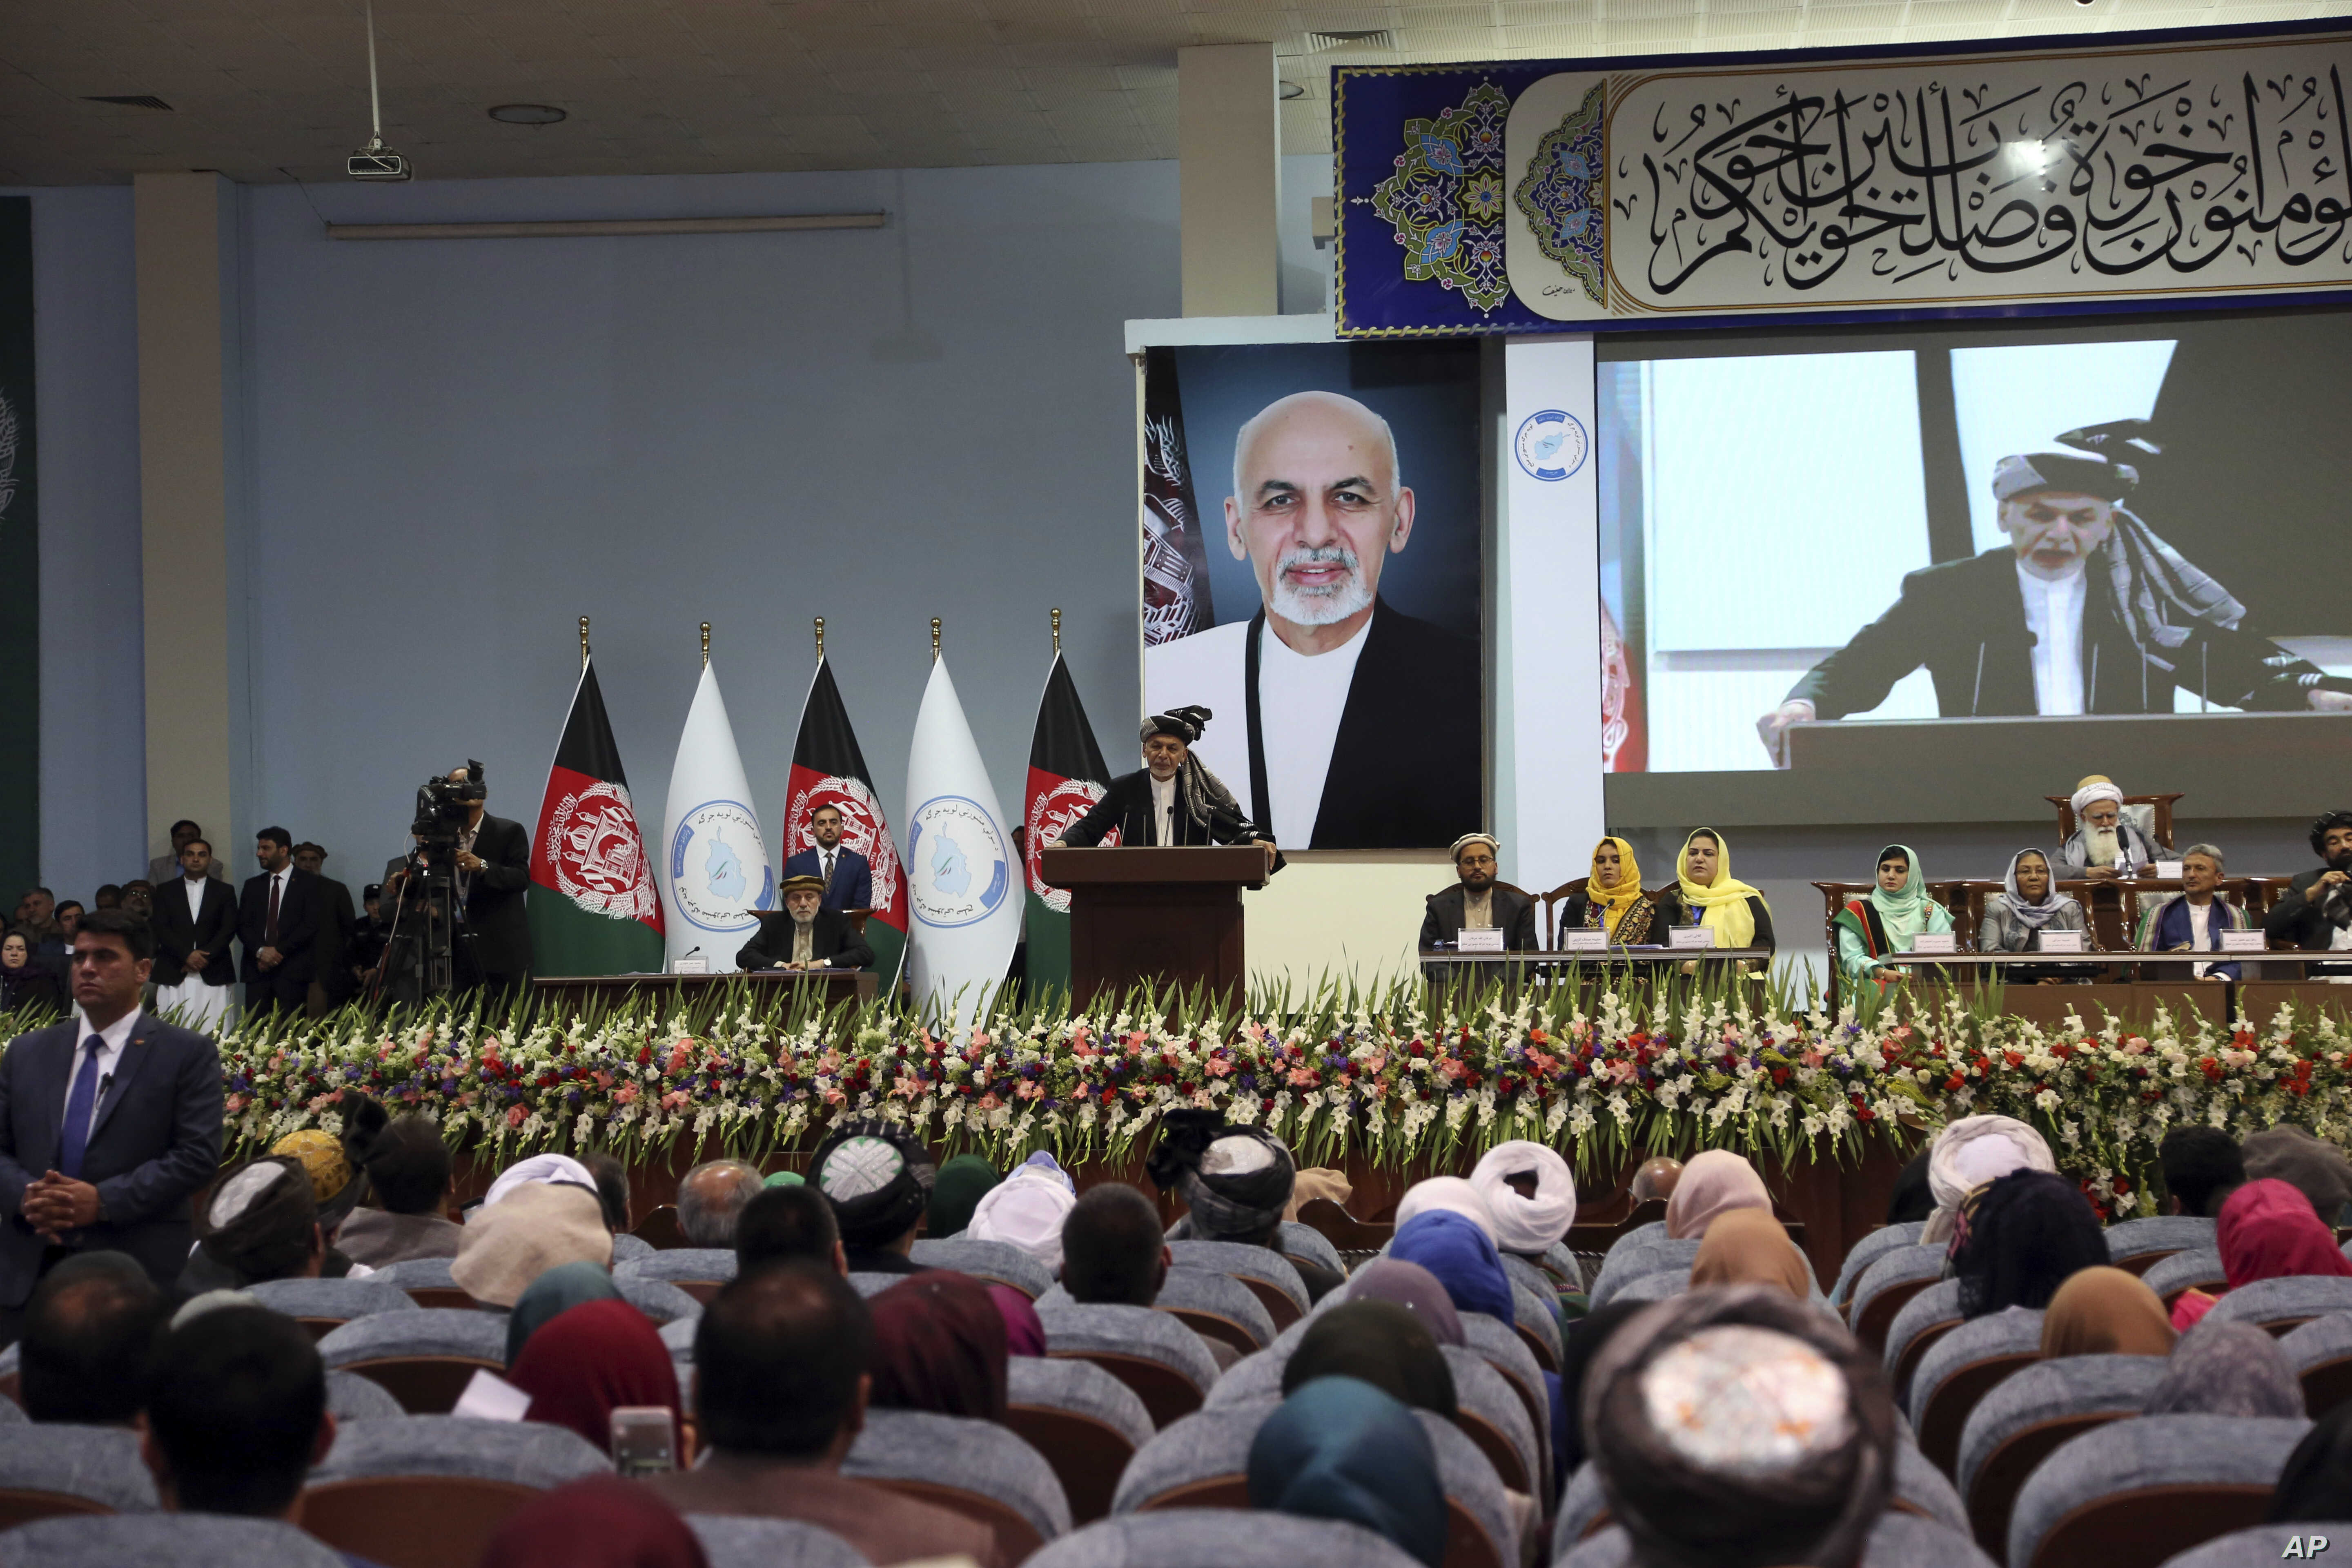 Afghan President Ashraf Ghani speaks on the last day of the Afghan Loya Jirga meeting in Kabul, Afghanistan, Friday, May 3, 2019. Ghani offers cease fire, says he will free 175 Taliban prisoners ahead of Ramadan, the Islamic holy month of Ramadan.